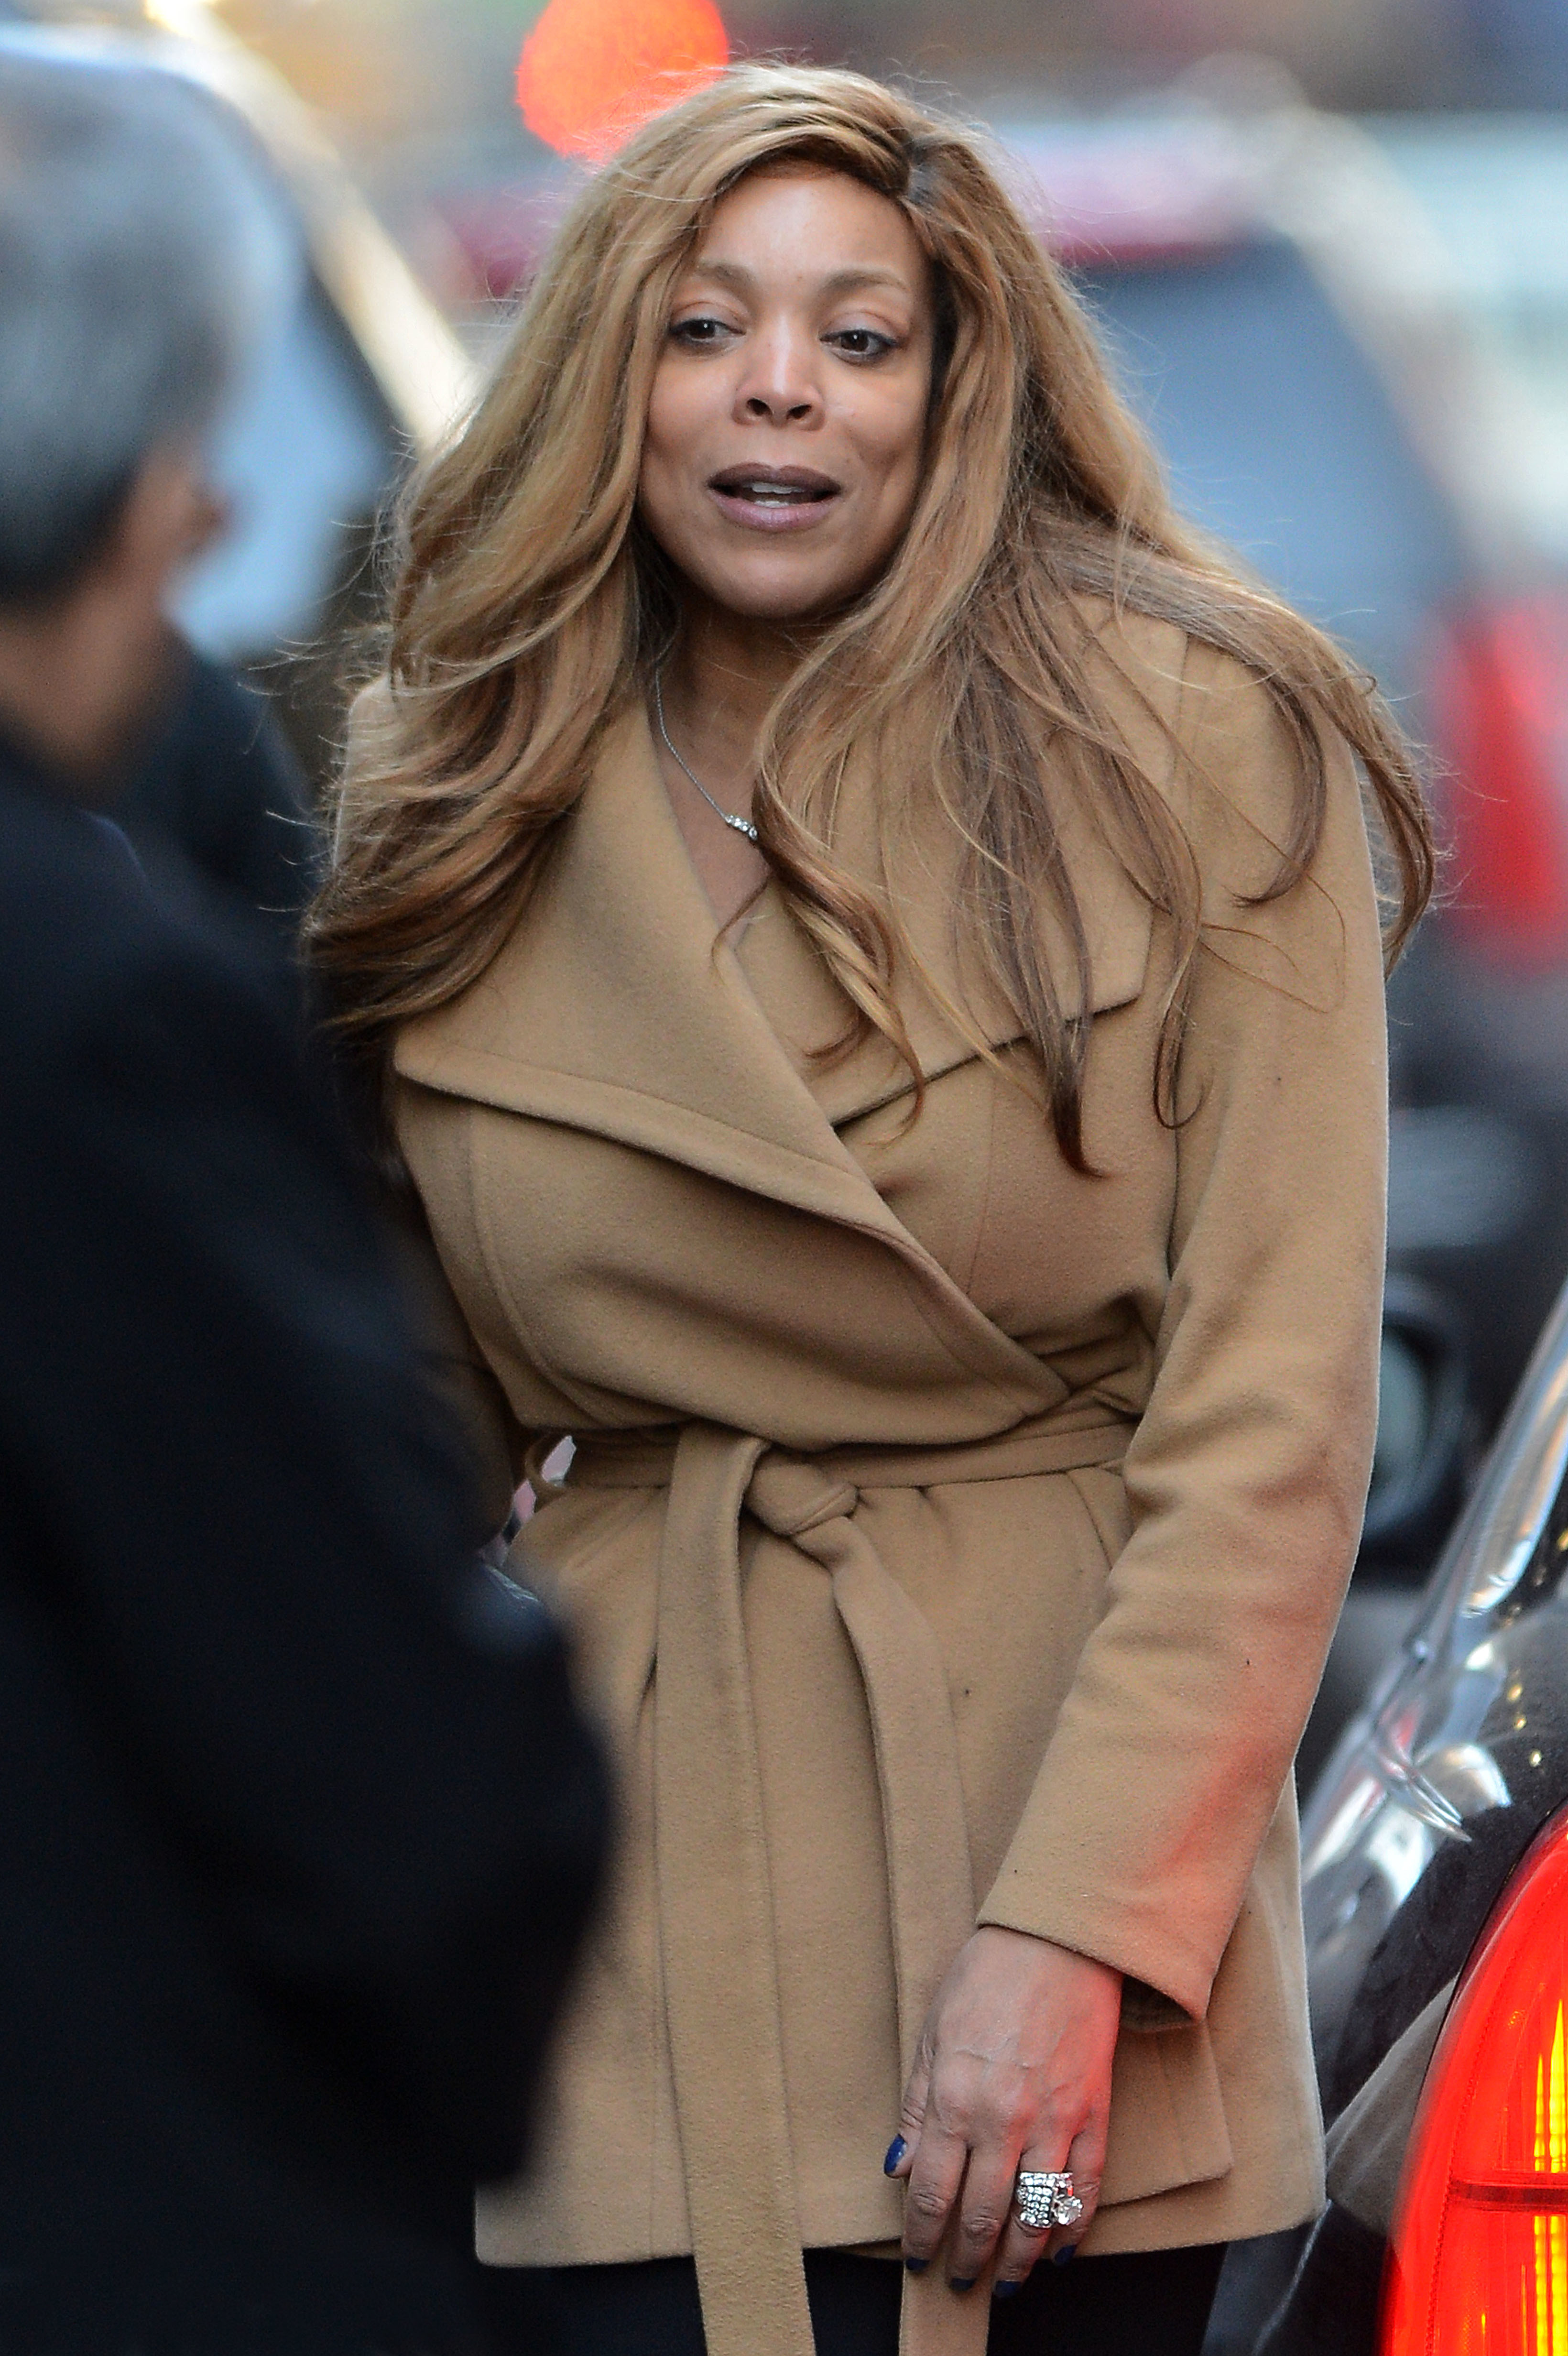 Wendy Williams without makeup engagement ring